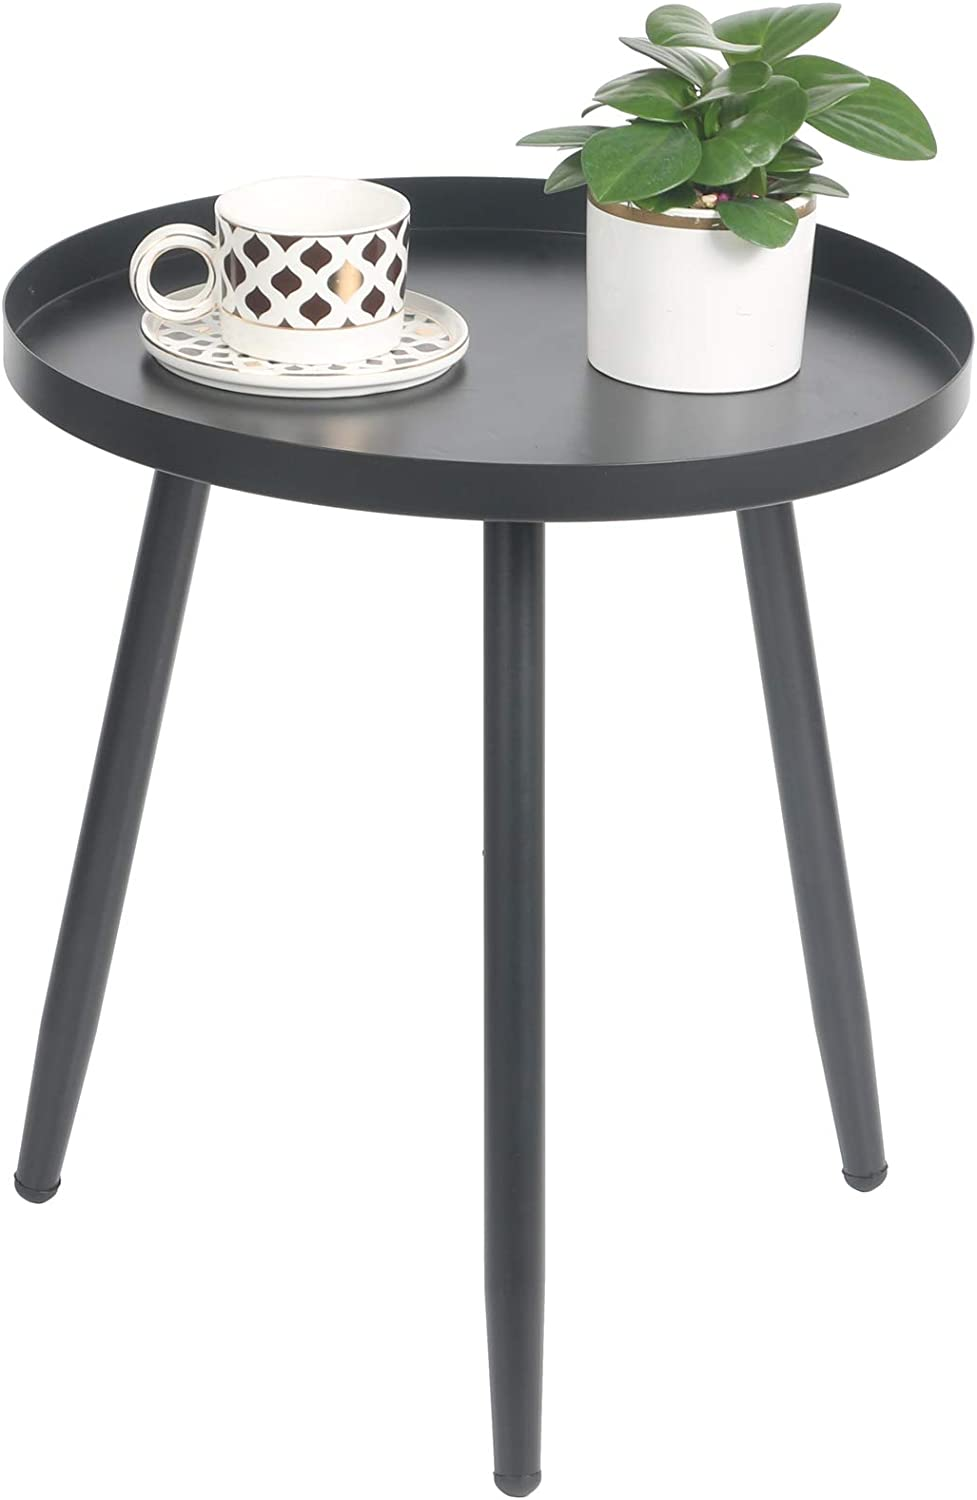 EXILOT Side Table, Round Metal Nightstand Modern Home Decor Coffee Tea End Table Accent Tables for Living Room Bedroom Office Small Spaces, 19.7